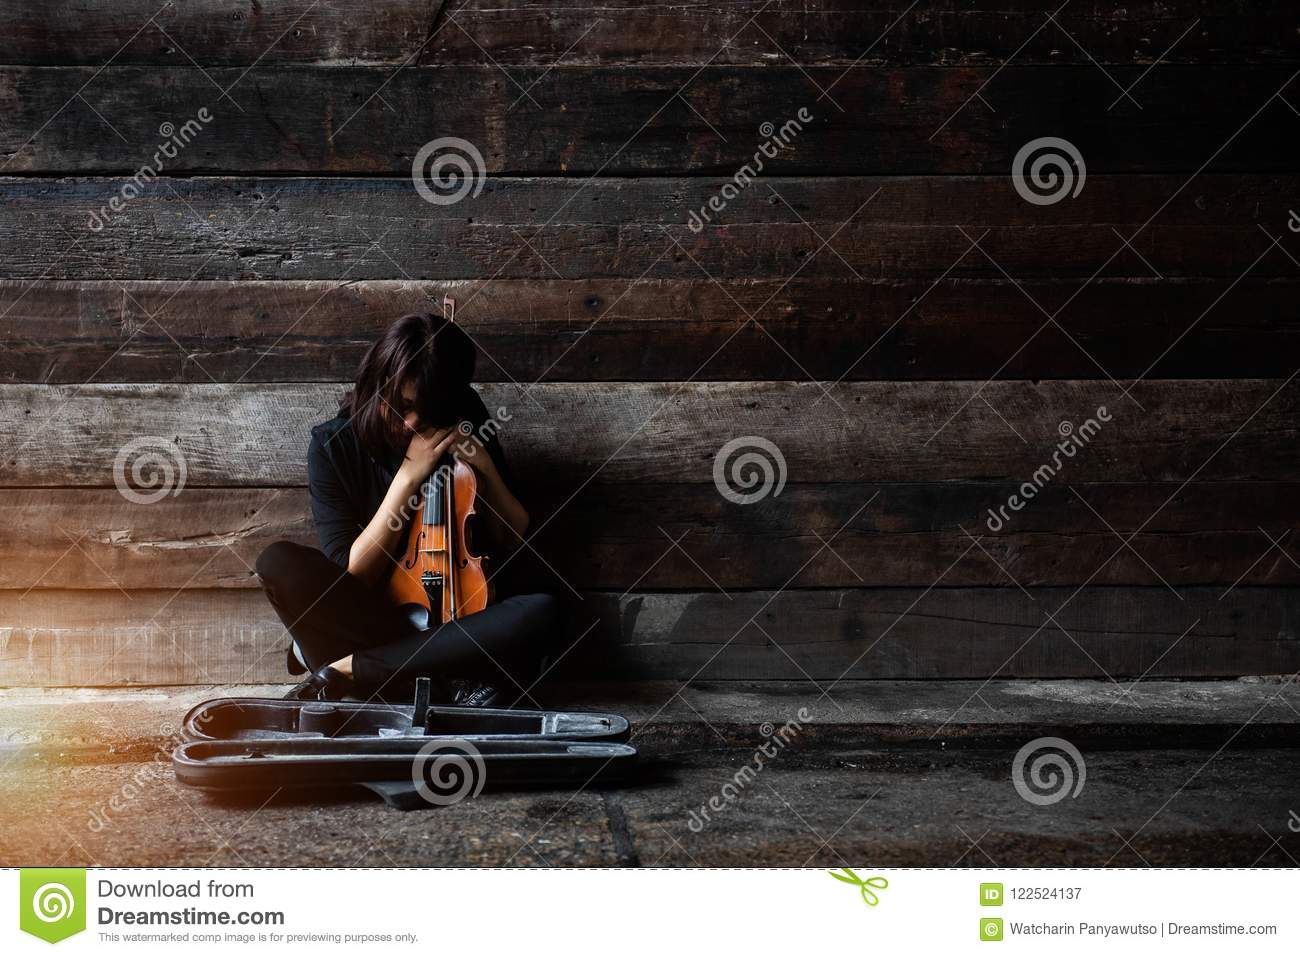 The lady is sitting on grunge surface cement floor,hold violin and bow in her arms,turn face down to volin,vintage and art style